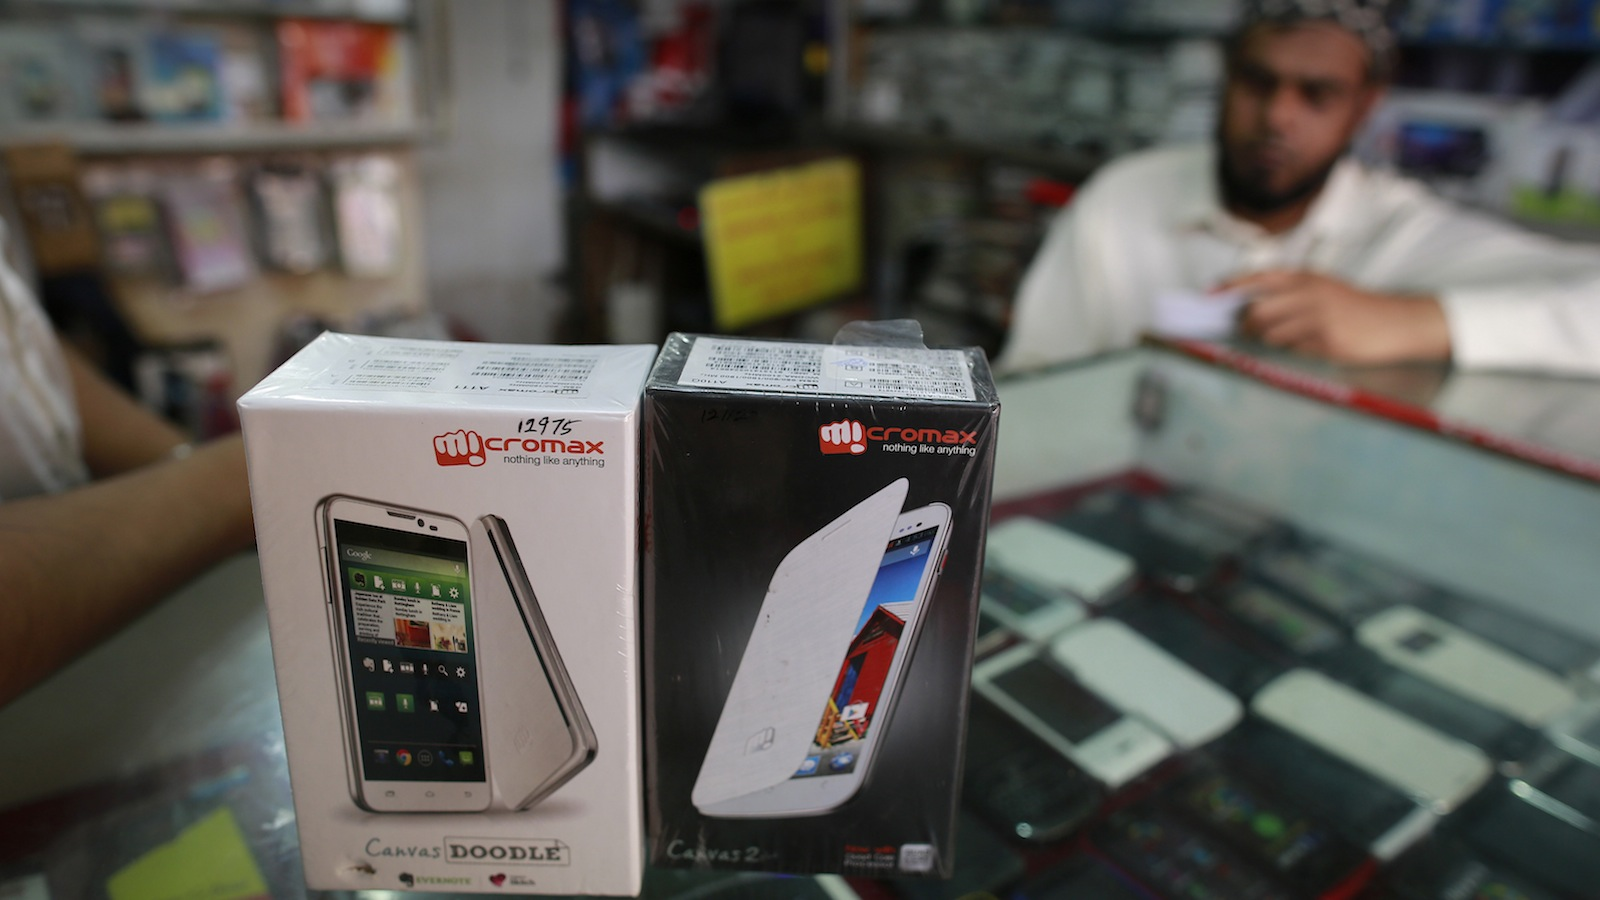 Micromax mobile phones are displayed at a mobile store in Mumbai December 4, 2013. India's Micromax, which has become the country's No. 2 smartphone brand just five years after selling its first handset - a $30 made-in-China model - is looking to go upmarket and overseas. The unlisted company sold 6.8 million phones in the July-September quarter including 2.2 million smartphones, and is on track to surpass $1 billion in sales in the fiscal year ending in March. Picture taken December 4, 2013. REUTERS/Danish Siddiqui